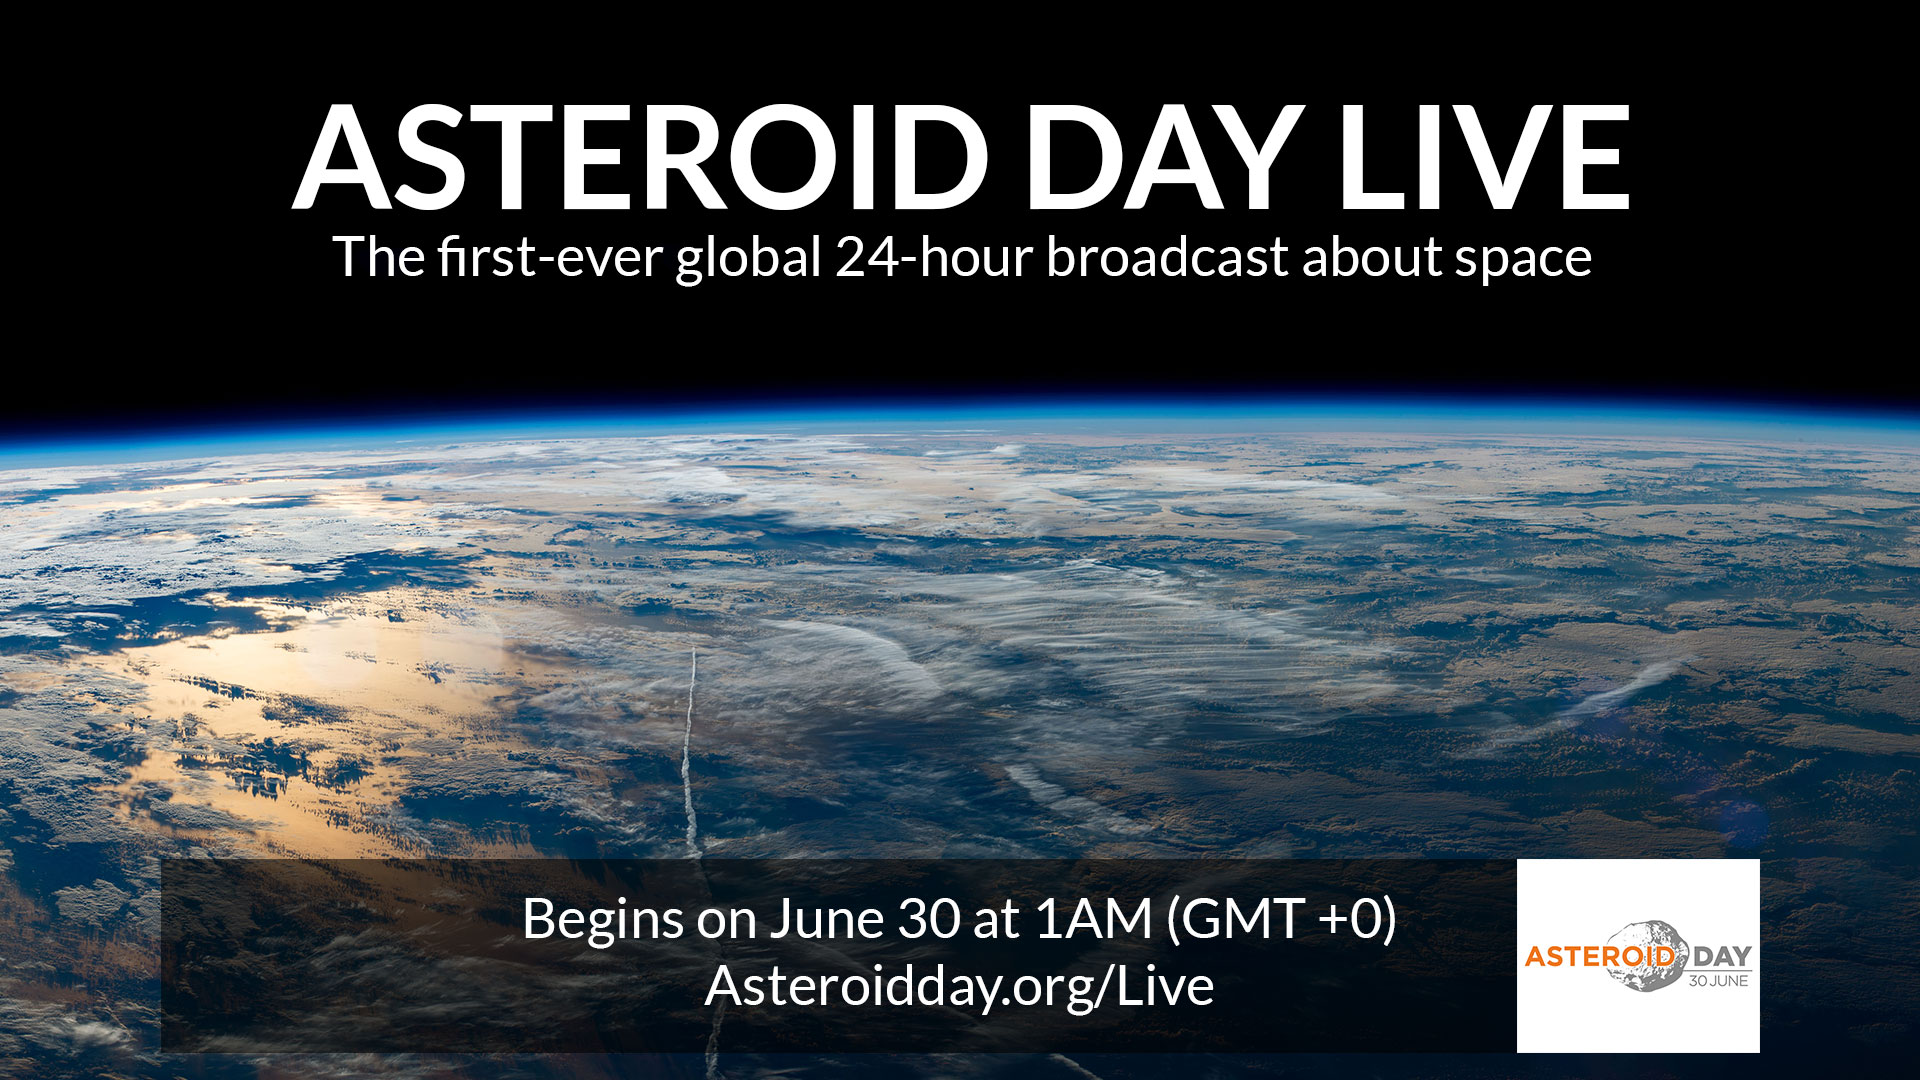 Asteroid Day Live - 24 hour global broadcast